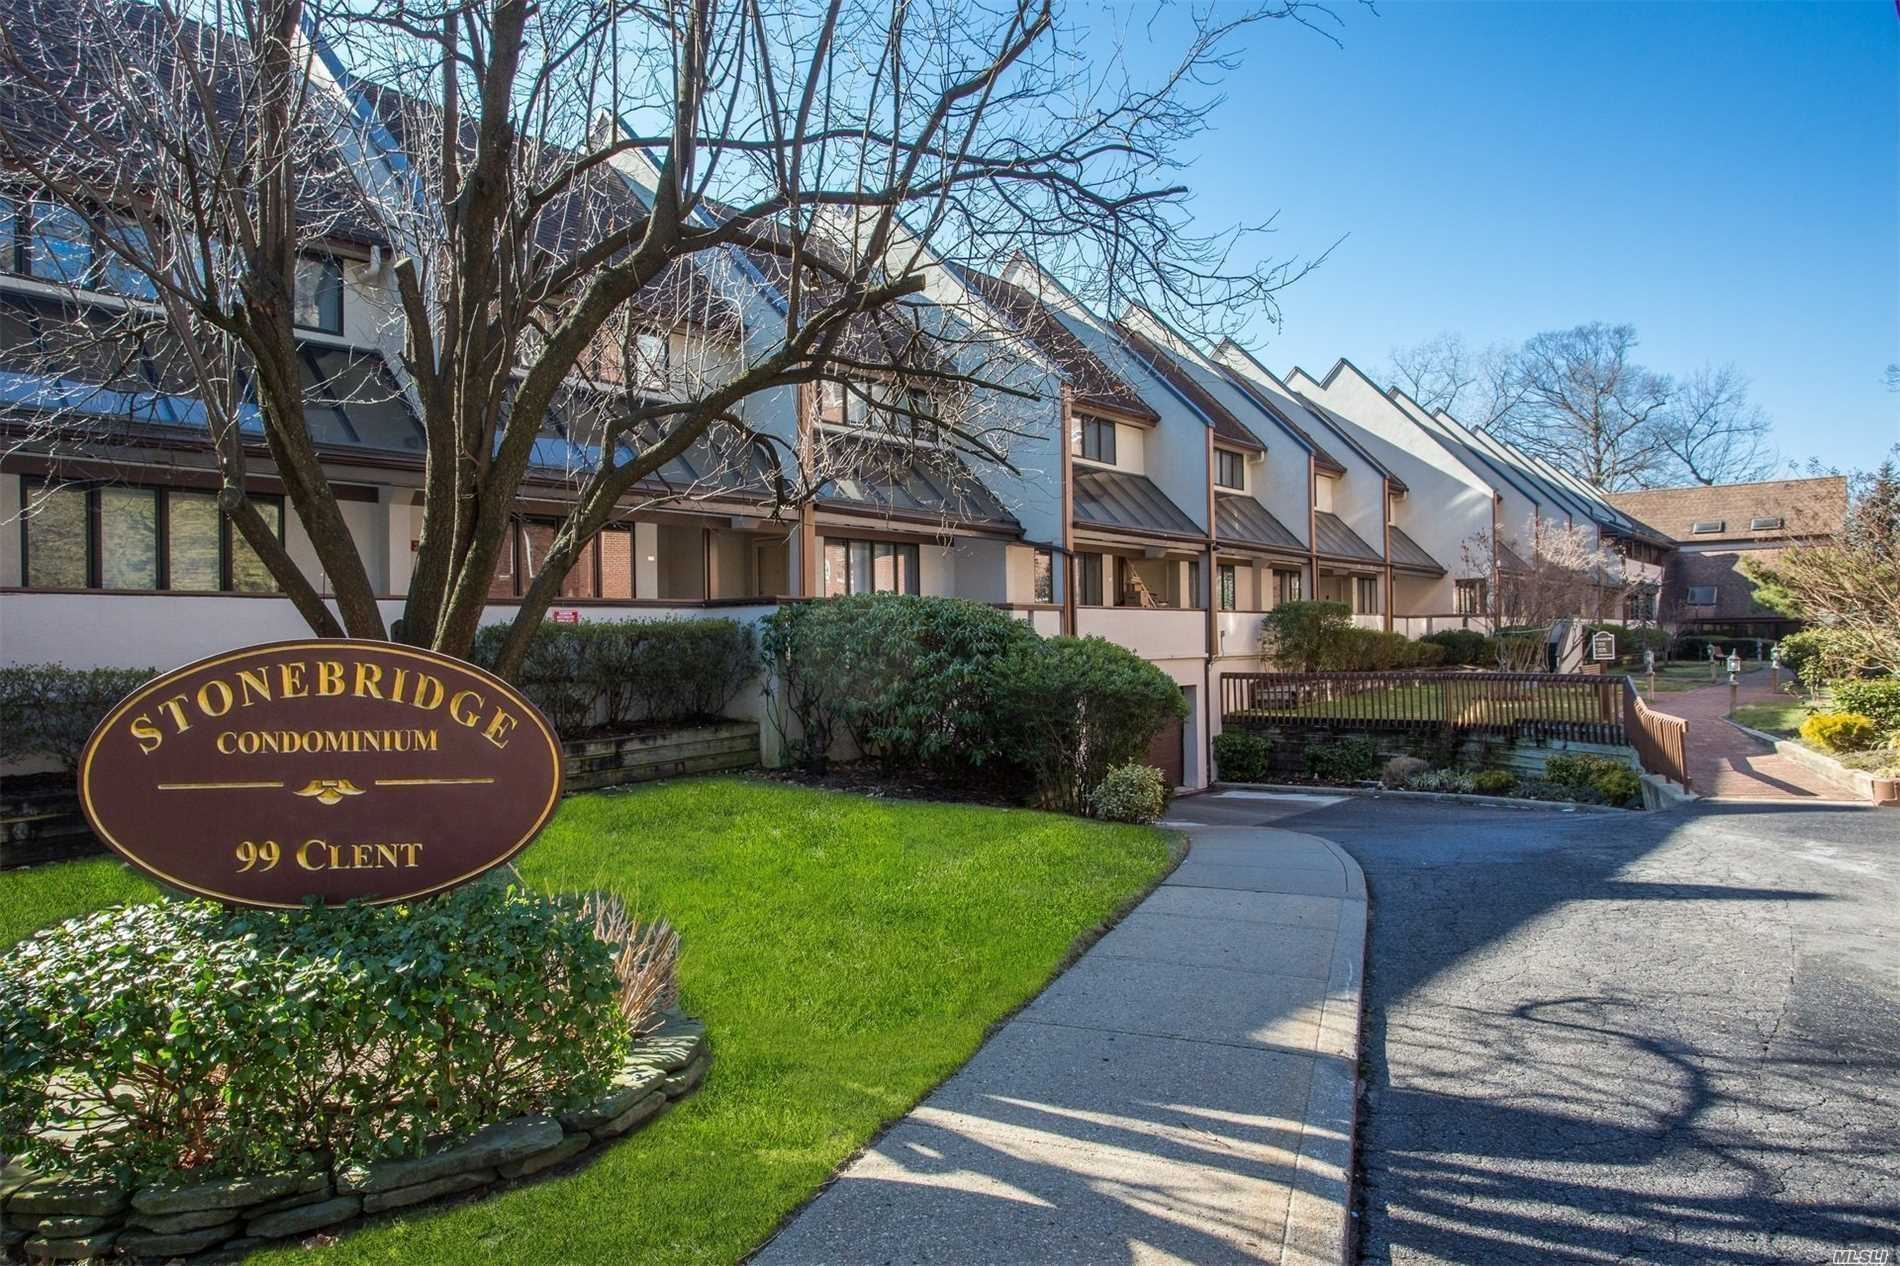 Beautiful Condo 5 Minutes Walk To Train Station And Stores New Granite Counter Tops Cathedral Ceiling With One Parking Indoor Spot Incl